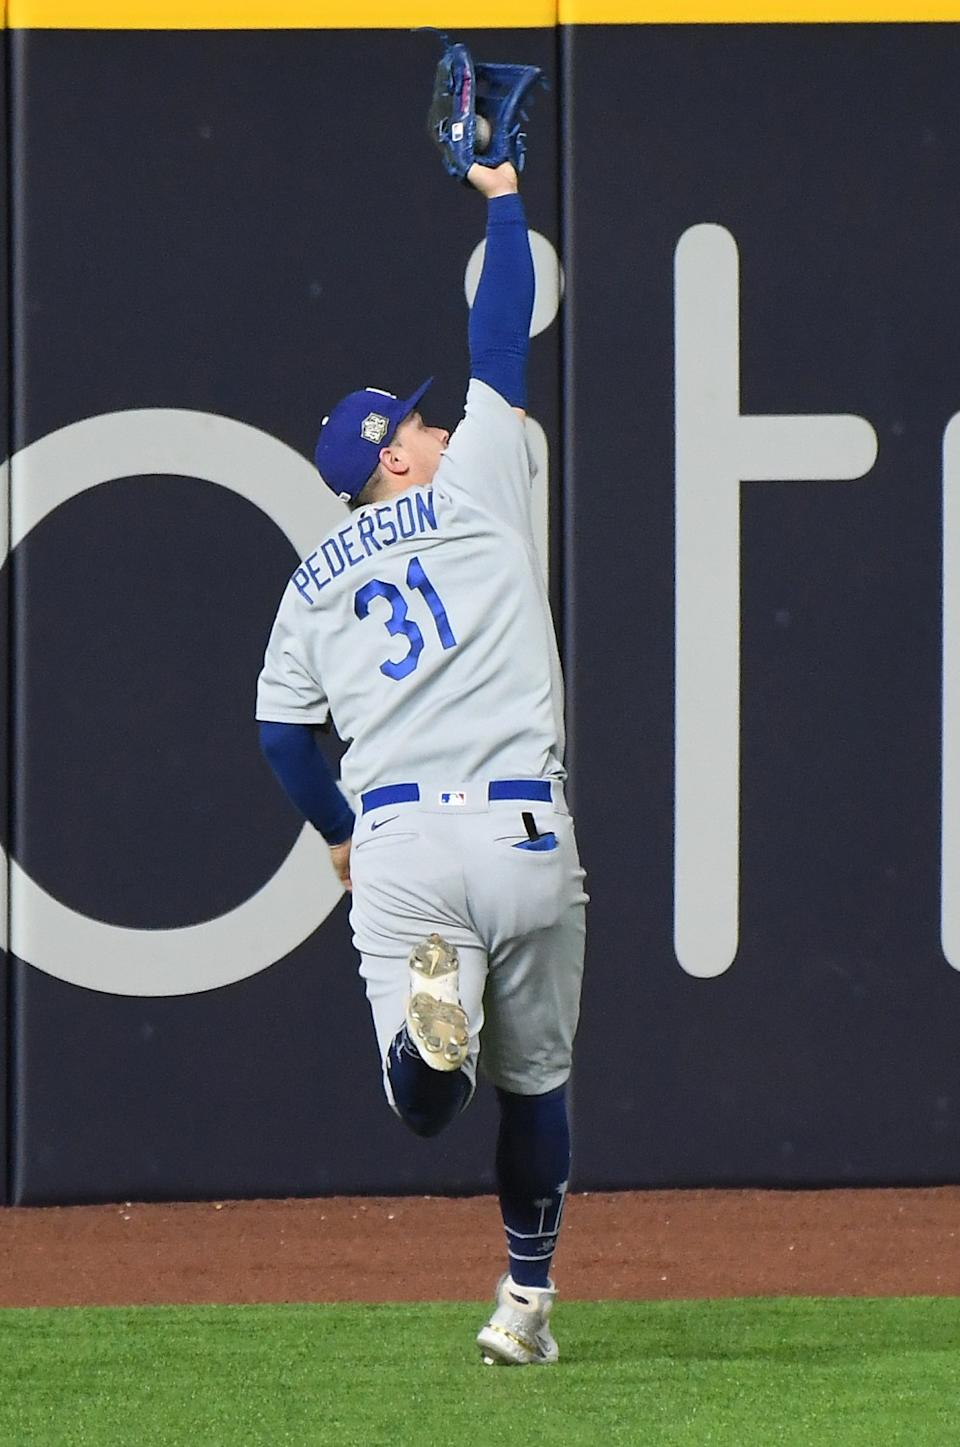 Dodgers left fielder Joc Pederson makes a catch off the bat of Rays' Joey Wendle during the seventh inning.